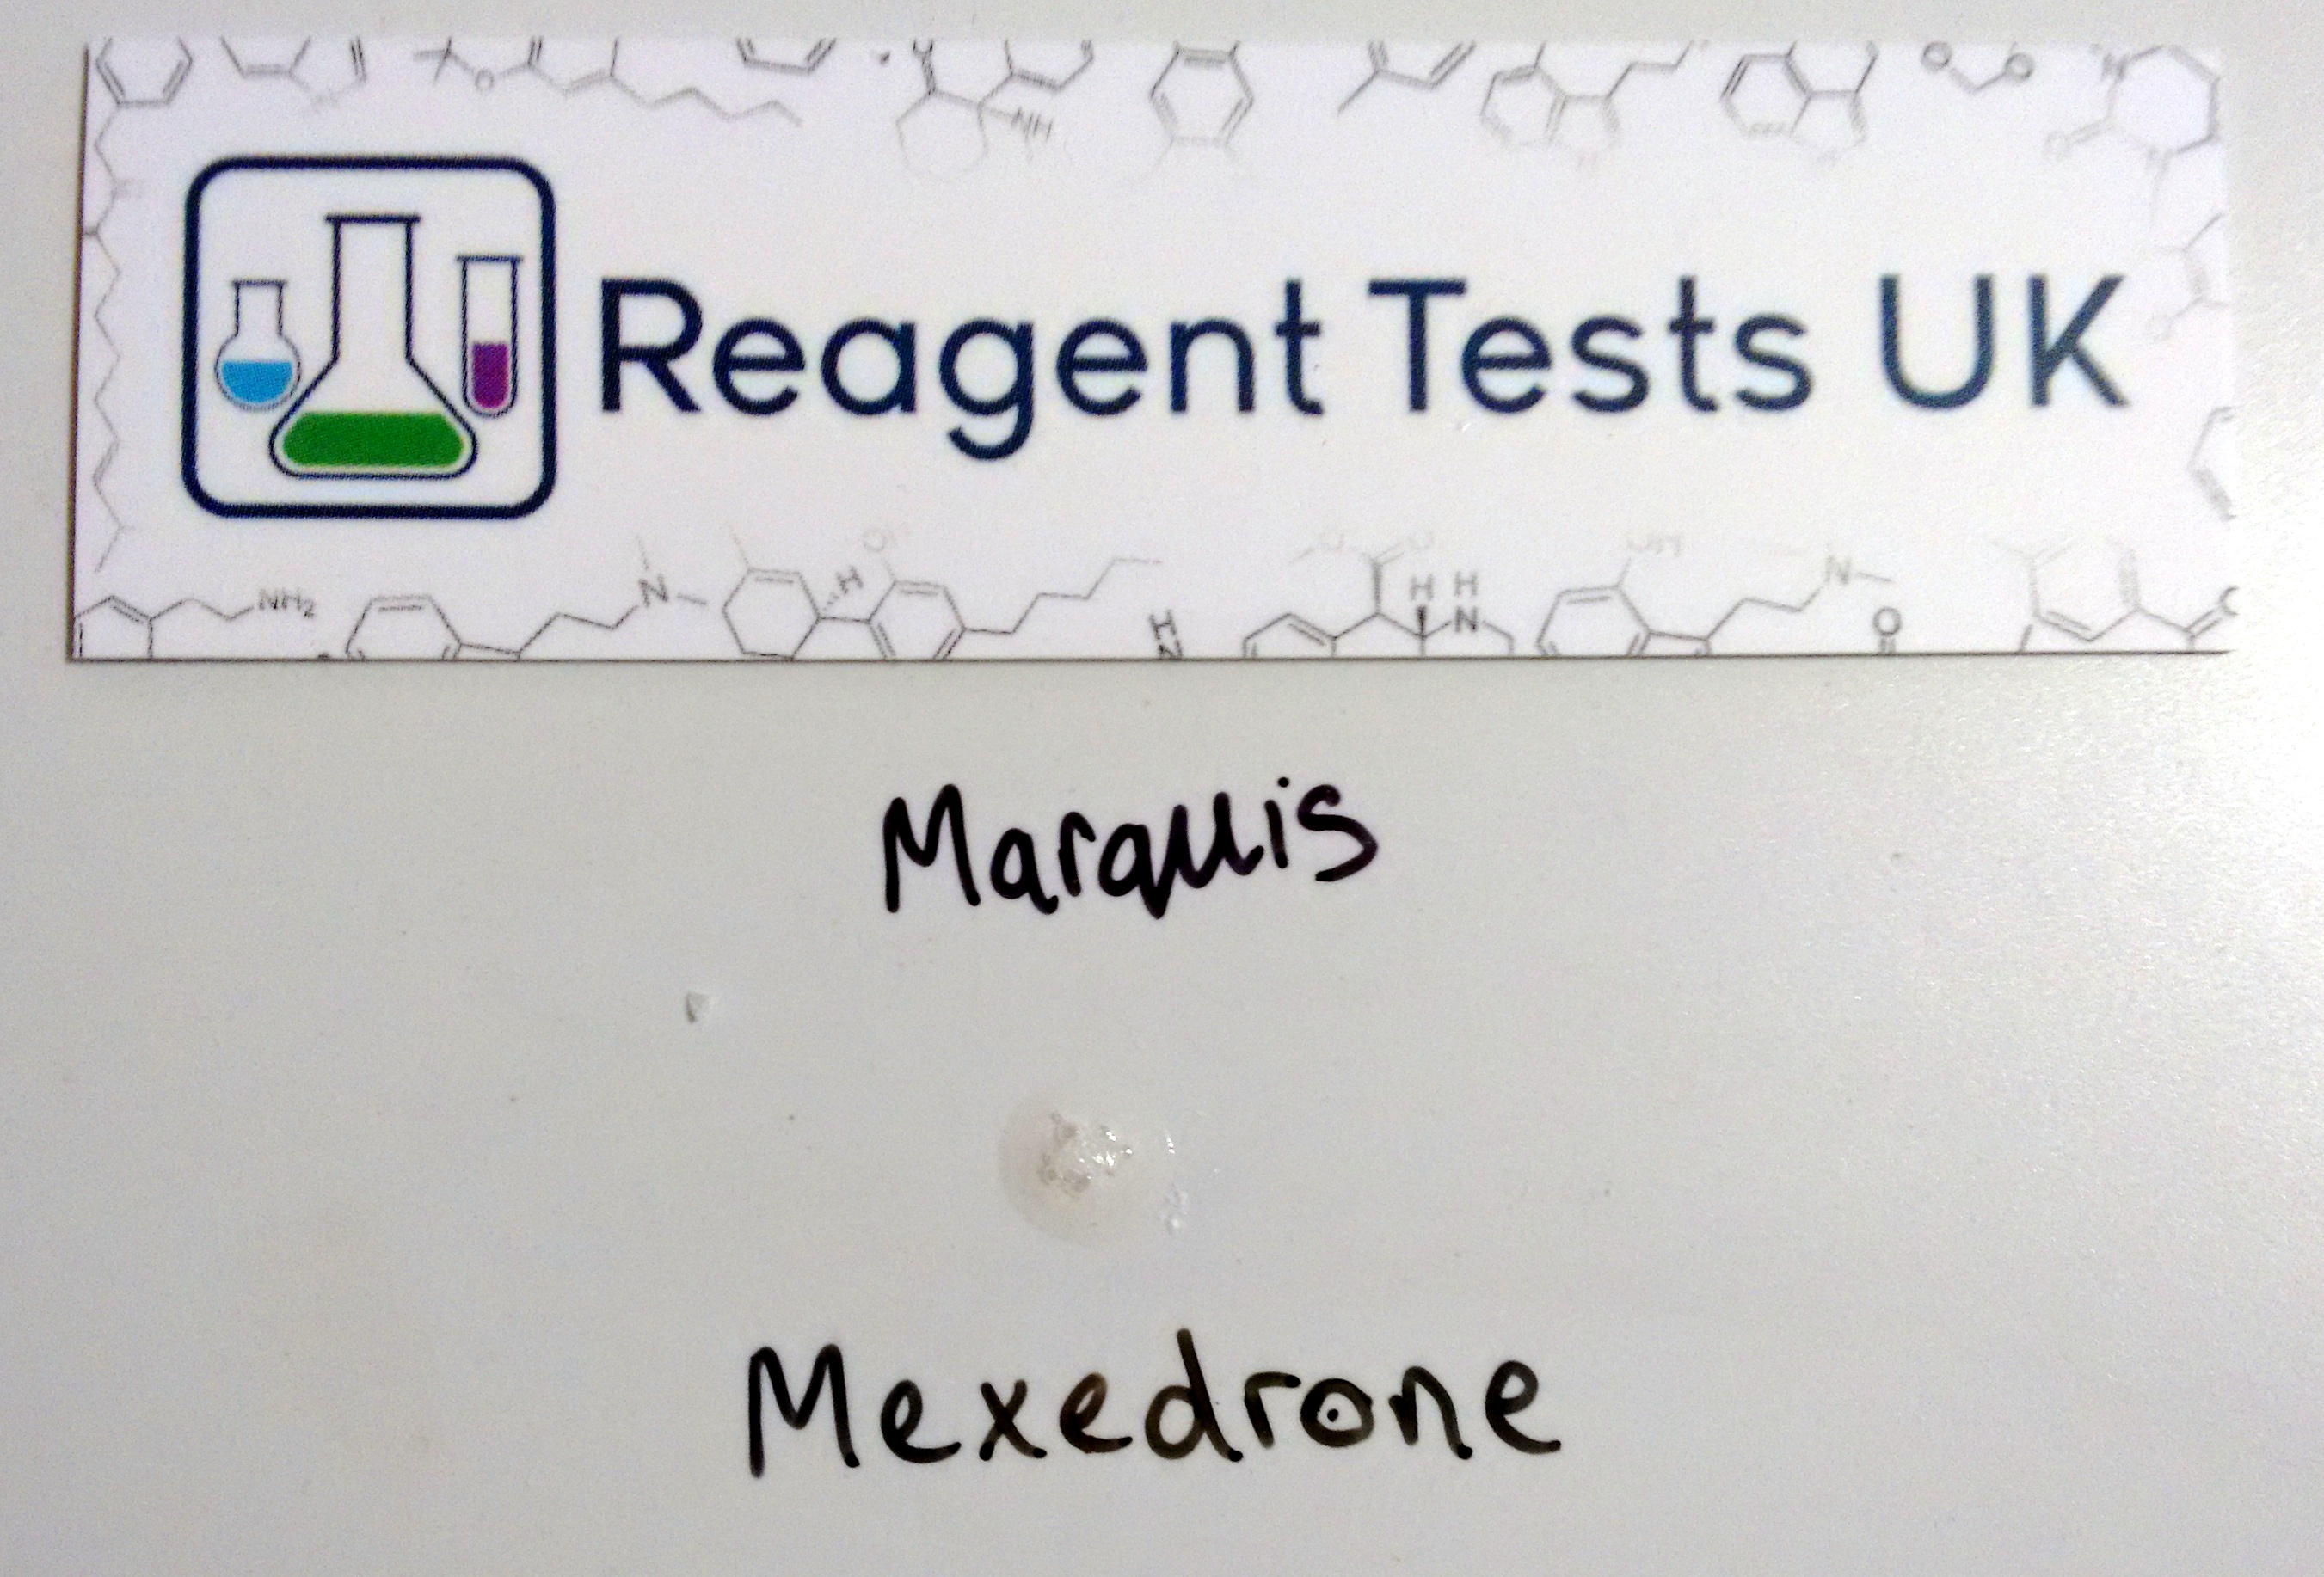 Page 2 – Reagent Tests UK